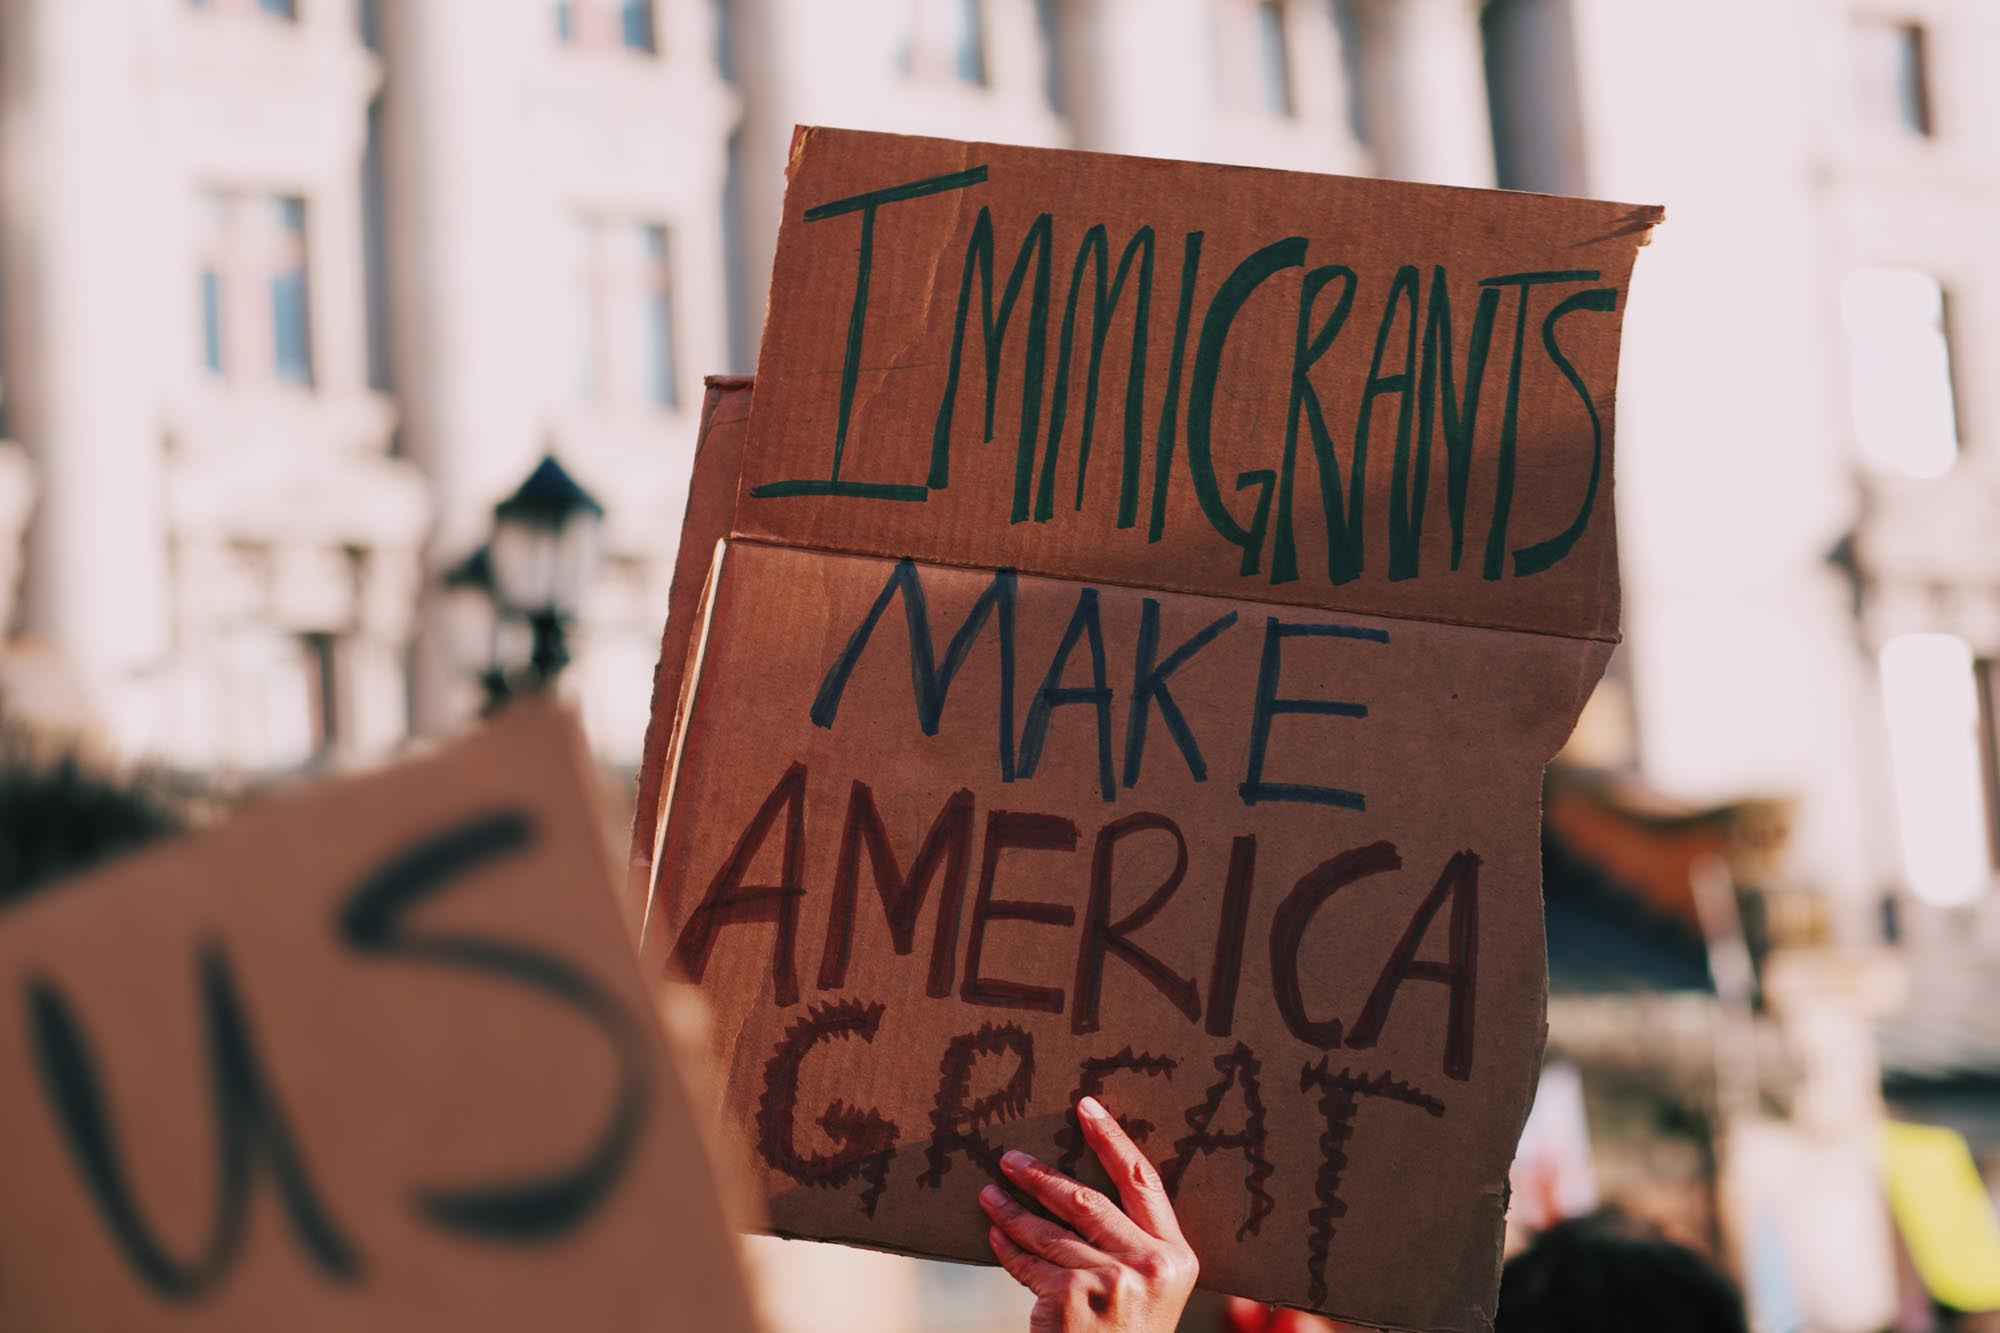 """Immigrants DO make America great, but when we say """"We are a nation of immigrants"""",we must also keep in mind that slavery was NOT immigration, and neither was it when white Europeans came here at the cost of entire indigenous populations.     try{(function() {if (typeof(lpcurruser) == 'undefined') lpcurruser = ''; if (document.getElementById('lpcurruserelt') && document.getElementById('lpcurruserelt').value != '') { lpcurruser = document.getElementById('lpcurruserelt').value; document.getElementById('lpcurruserelt').value = ''; } if (typeof(lpcurrpass) == 'undefined') lpcurrpass=''; if (document.getElementById('lpcurrpasselt') && document.getElementById('lpcurrpasselt').value != '') { lpcurrpass = document.getElementById('lpcurrpasselt').value; document.getElementById('lpcurrpasselt').value = ''; } var lploc=3;var lponlyfill=1;(function() { var doc=document; var _u=null; var _p=null; var body=doc.body; if (lploc==3 && body.className.indexOf('squarespace-login') =0) { var inps =doc.getElementsByName('password'); if (inps.length 0) { _p =inps[0]; } inps =doc.getElementsByName('email'); if (inps.length 0) { _u =inps[0]; }  if (lpcurrpass && _p) { _p.value = lpcurrpass; } if (lpcurruser && _u) { _u.value = lpcurruser; } } })();lpcurruser = ''; lpcurrpass = '';})();}catch(e){}"""